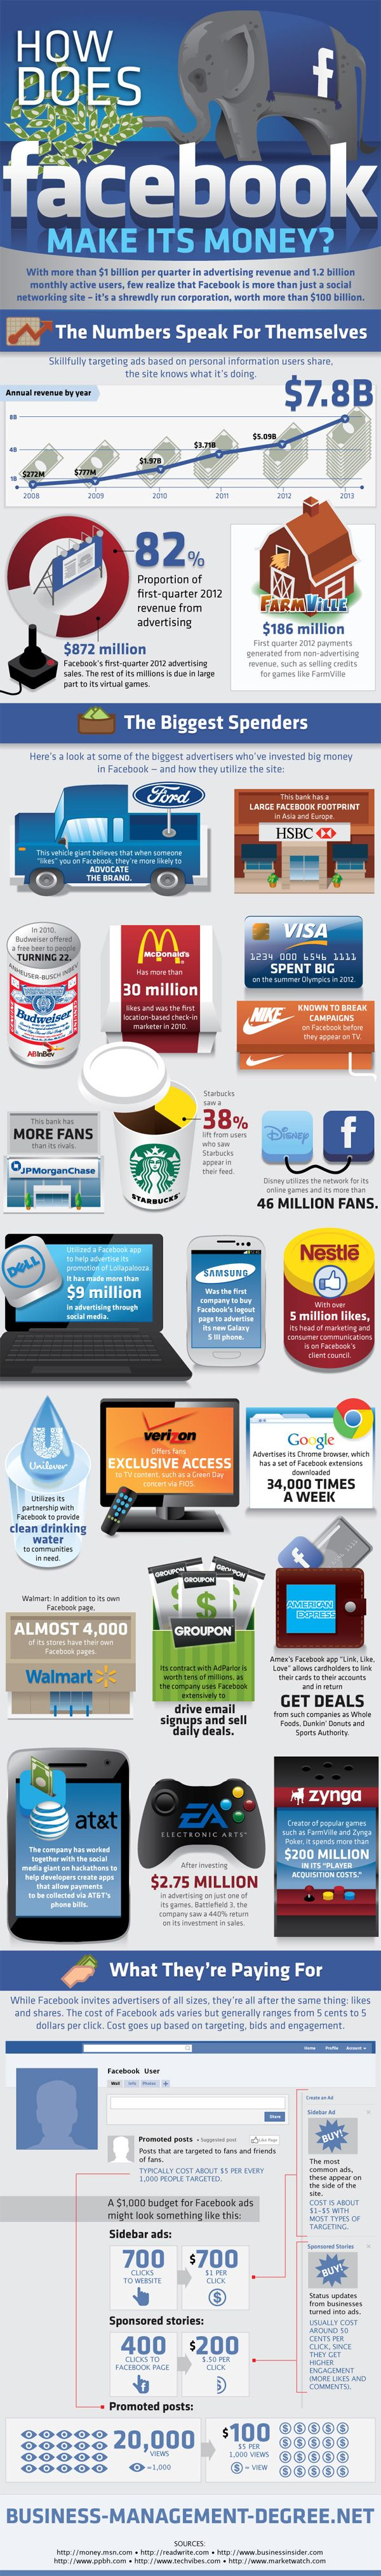 Hey big spender. Which brand spend most on Facebook  - #SocialMedia #Infographic